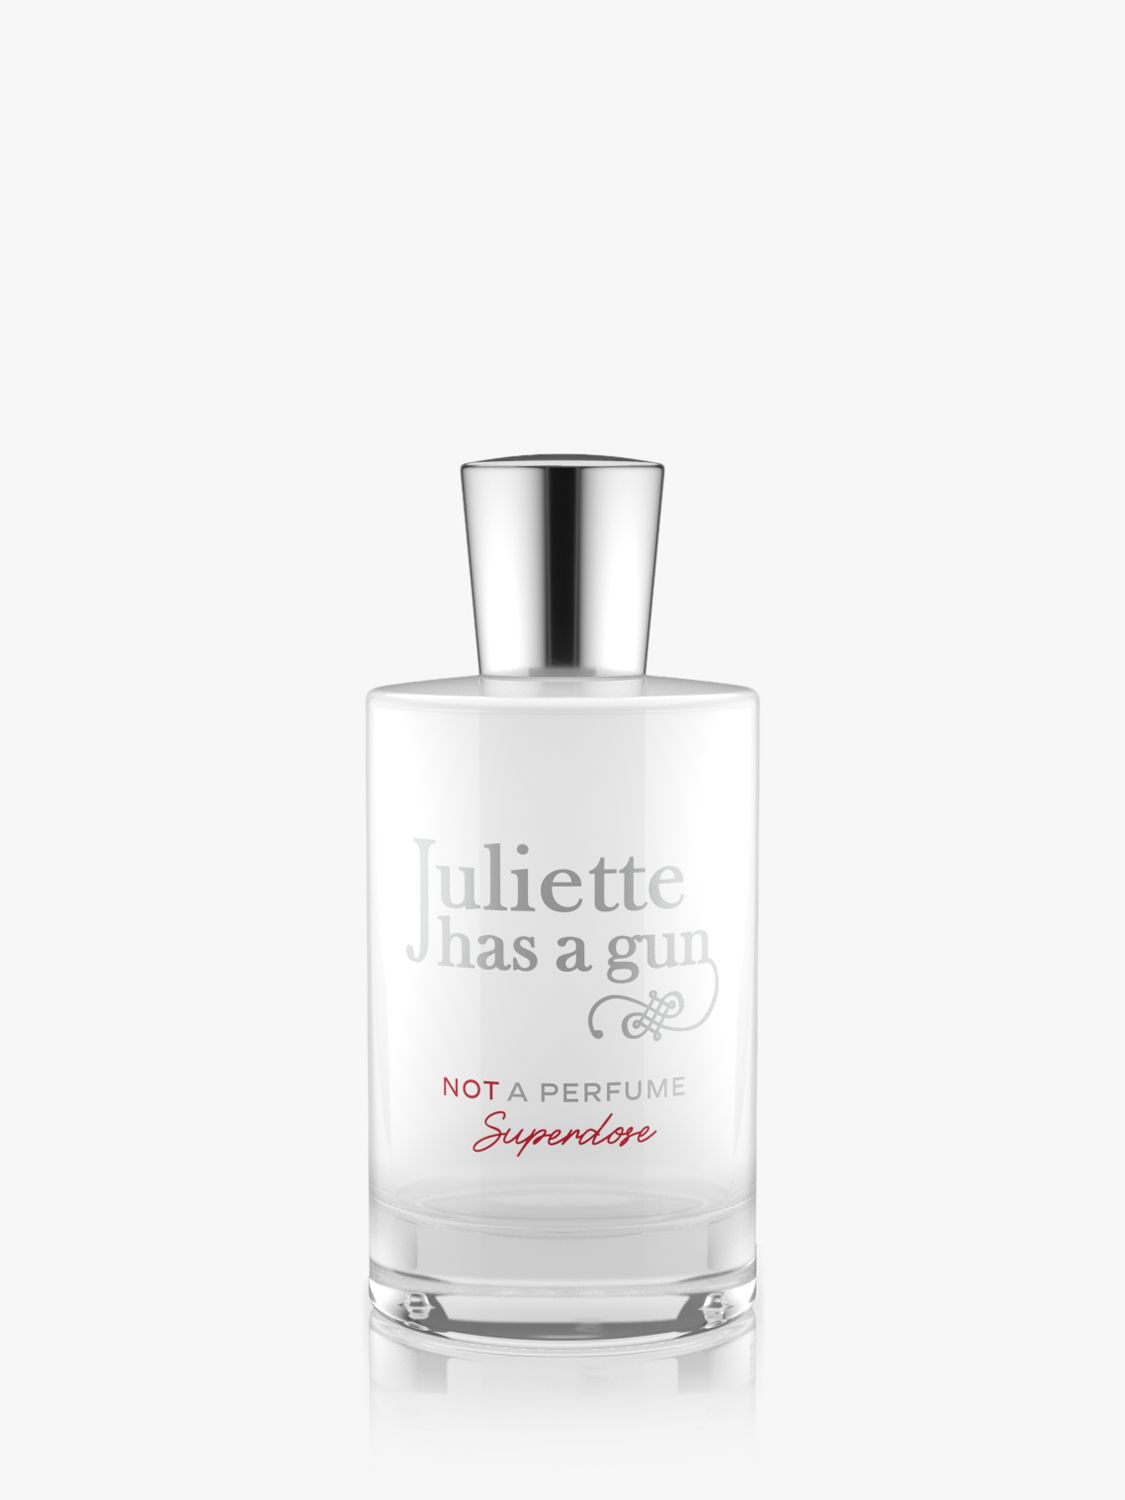 Juliette Has A Gun Juliette has a Gun Not a Perfume Superdose Eau de Parfum, 100ml